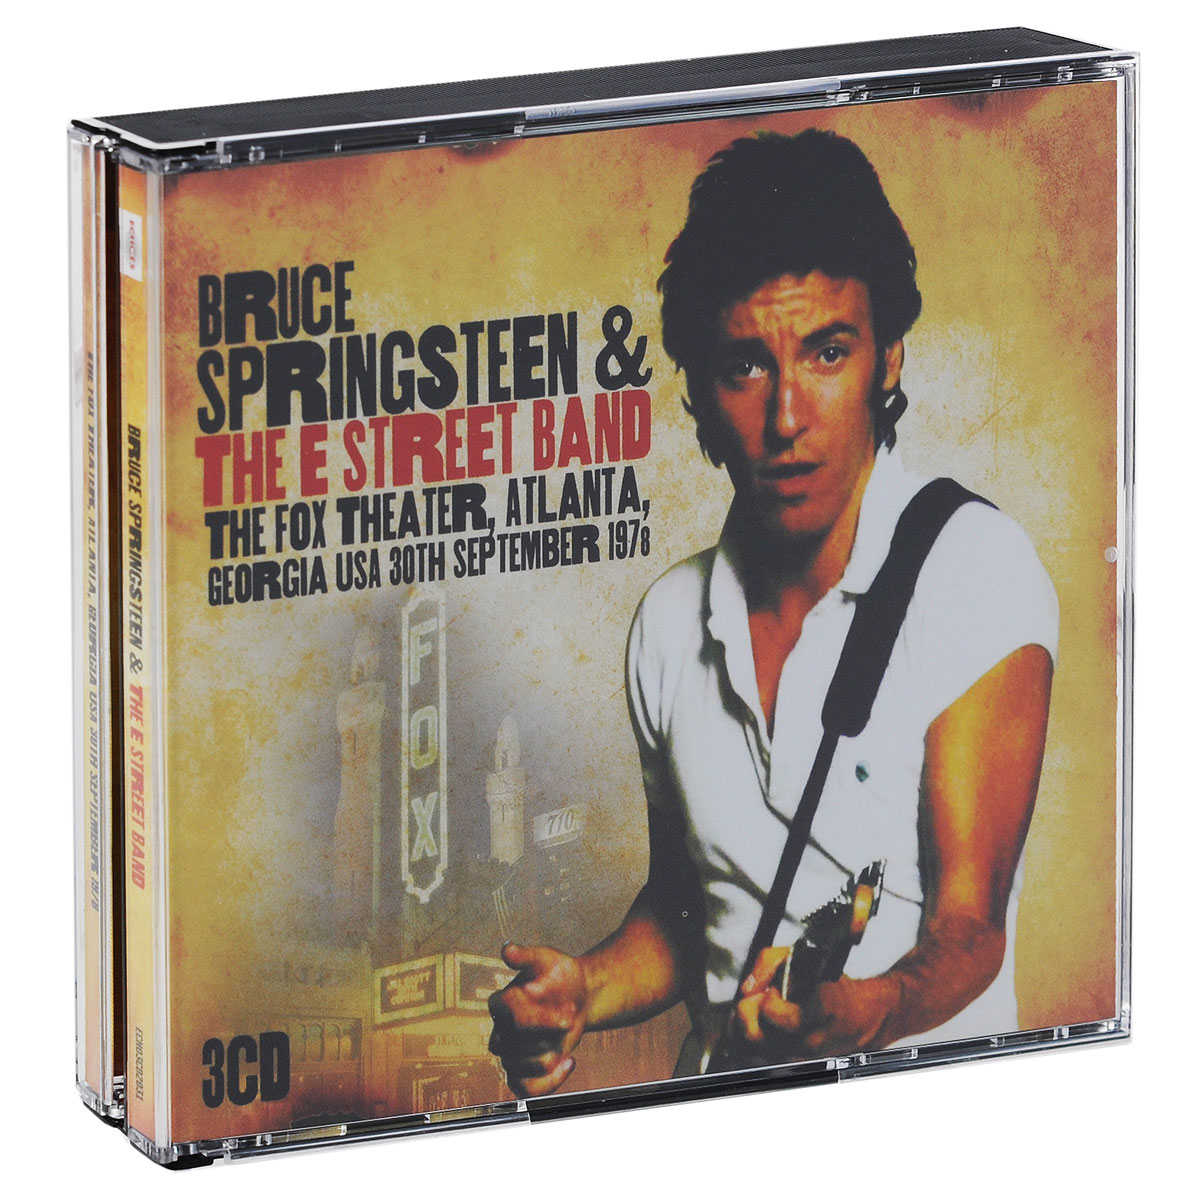 Брюс Спрингстин,The E Street Band Bruce Springsteen & The Street Band. The Fox Theater, Atlanta, Georgia, USA, 30th September, 1978 (3 CD) bruce logan e environmental transport processes